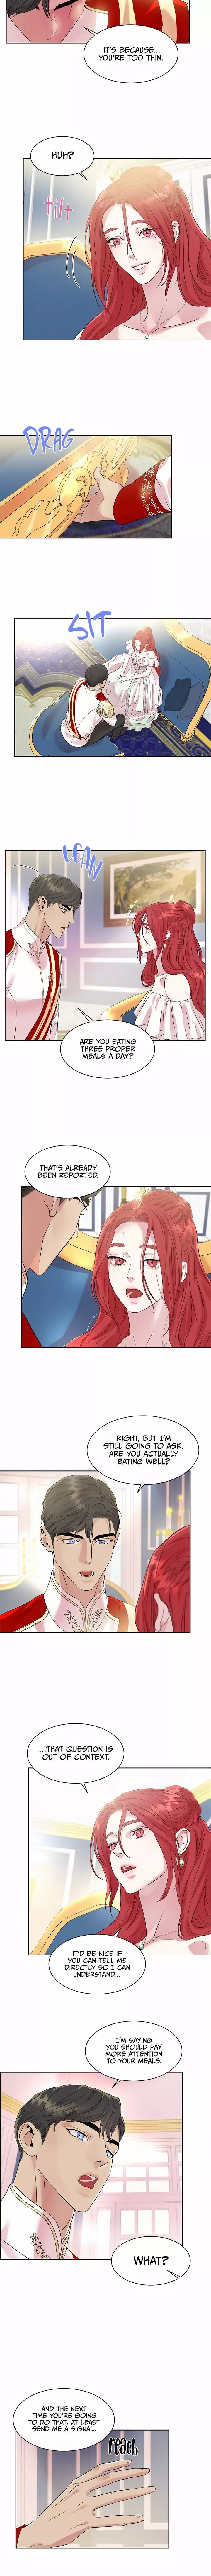 Aideen - chapter 27 - #2